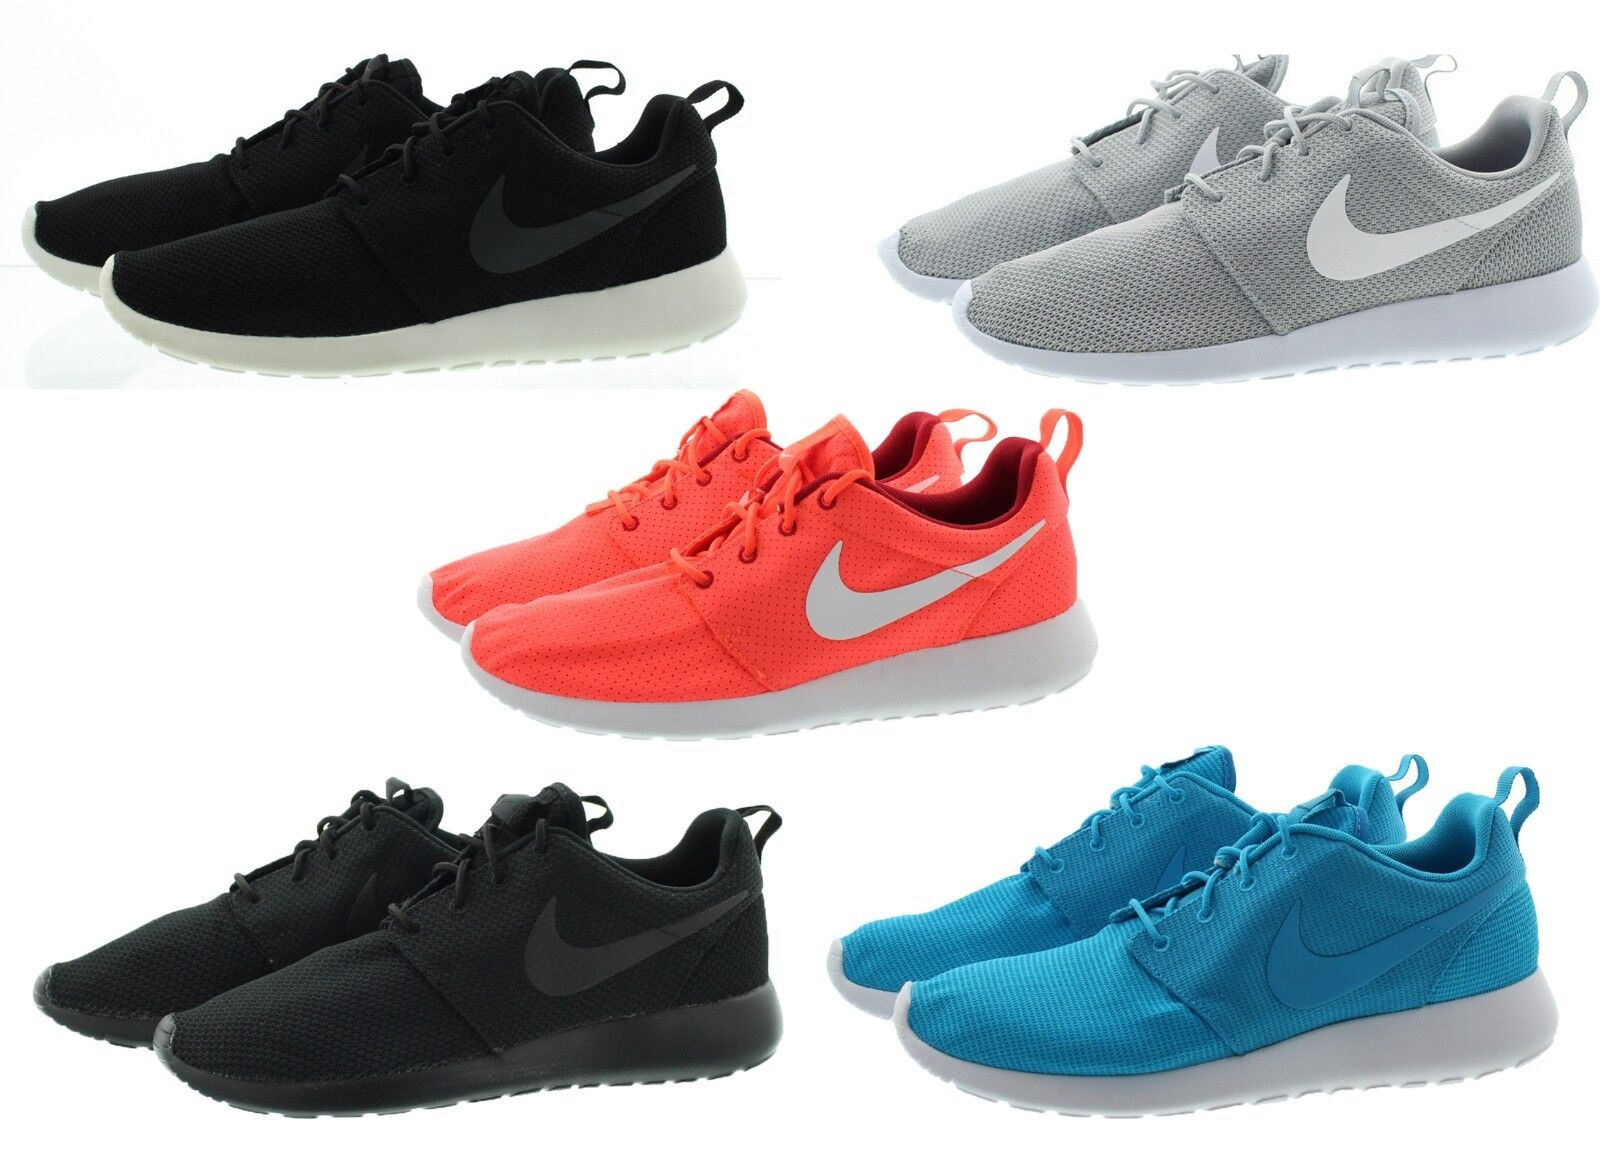 Nike 511881 Mens Roshe One Running Shoes Training Active Low Top Shoes Running Sneakers c7598d